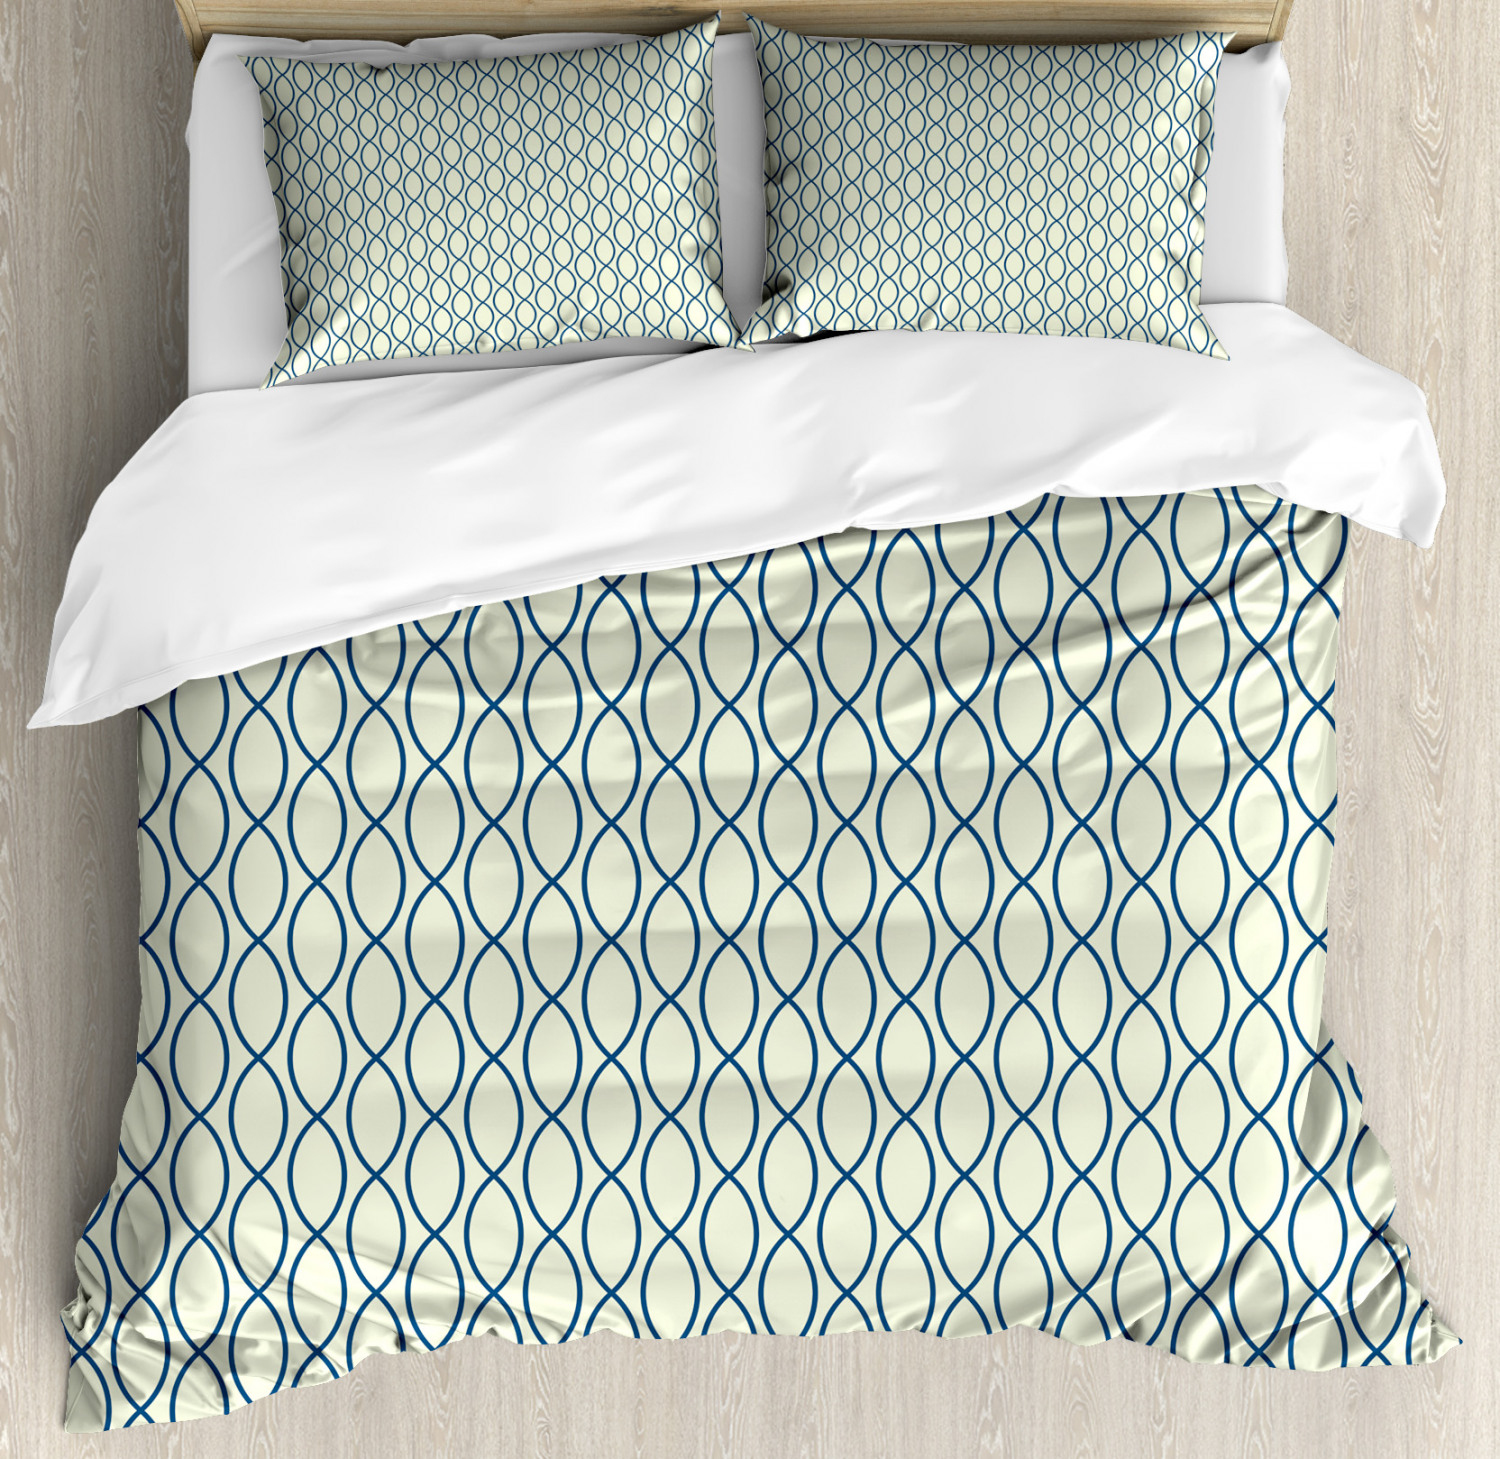 Abstract Queen Size Duvet Cover Set Fishing Net Lattice with 2 Pillow Shams